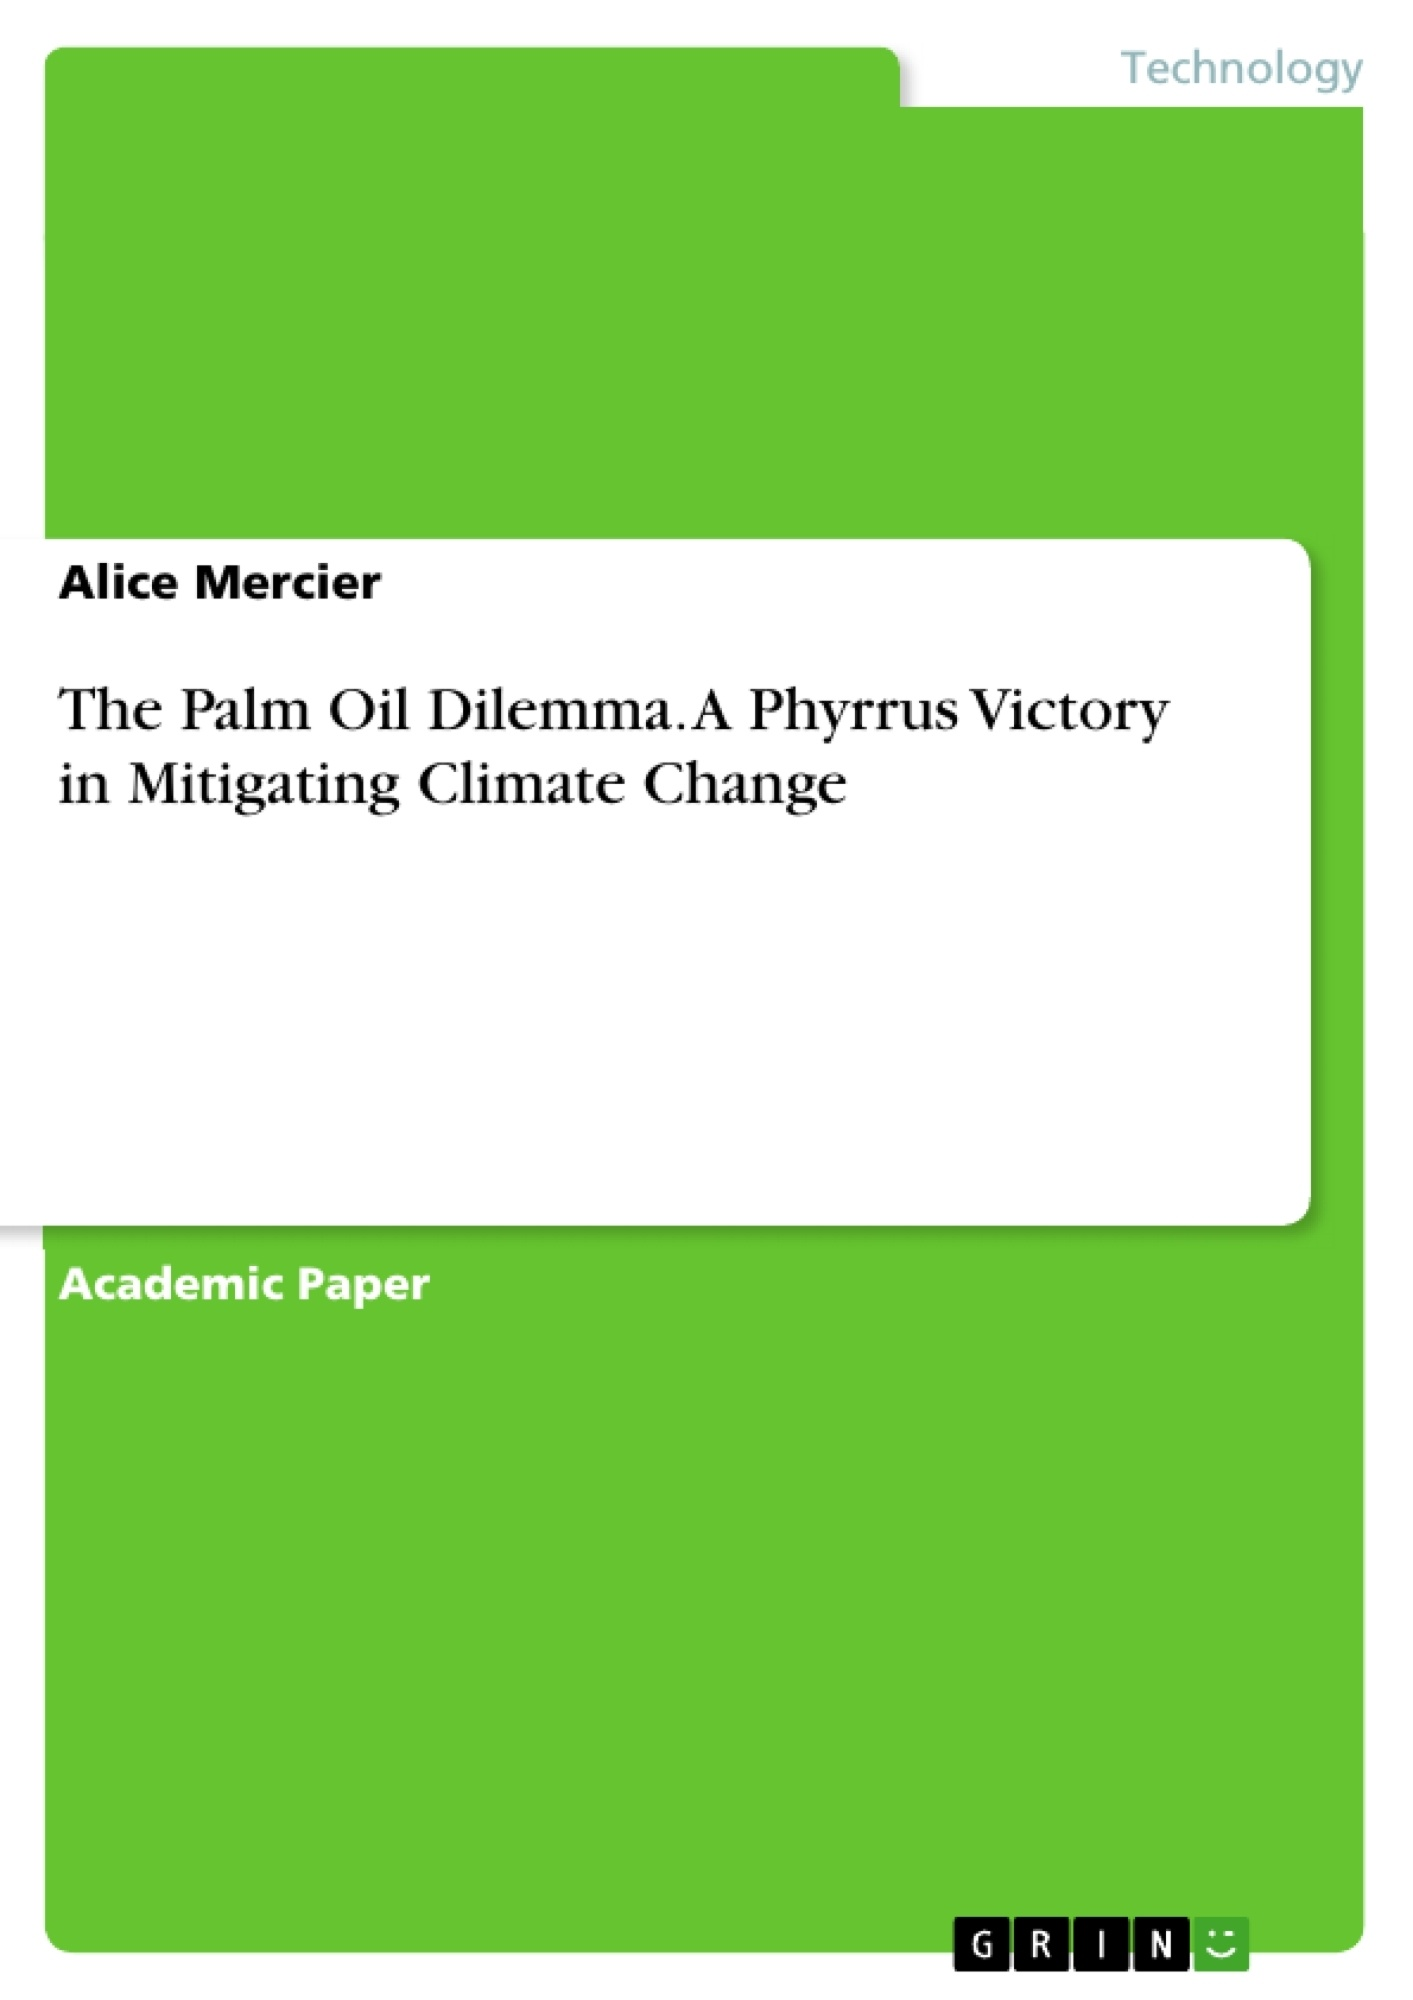 Title: The Palm Oil Dilemma. A Phyrrus Victory in Mitigating Climate Change